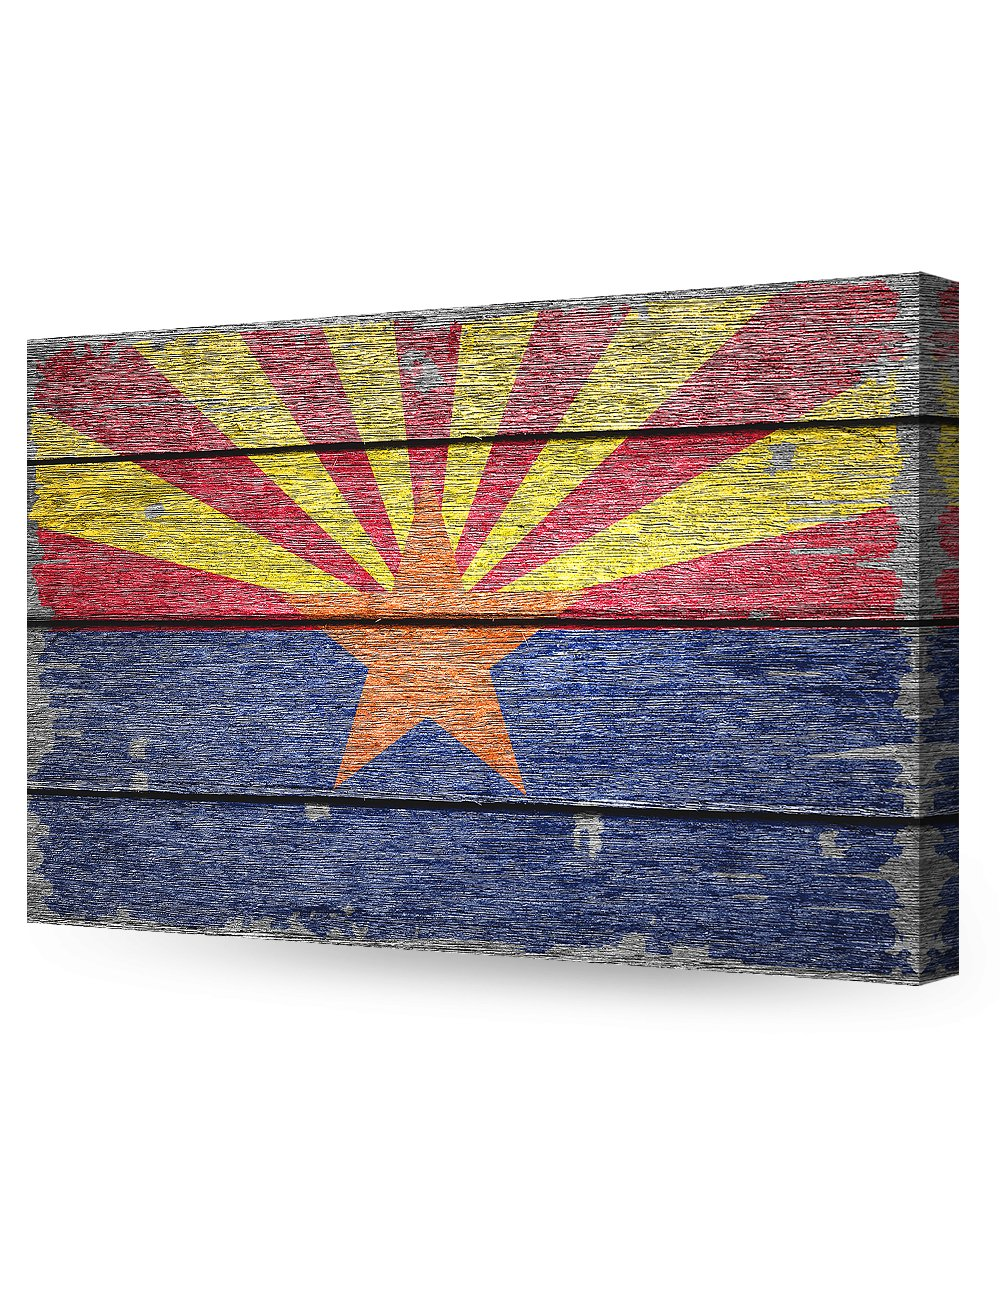 DecorArts - Arizona State Flag. Giclee Print on 100% Archival Cotton Canvas, Canvas wall art for Wall Decor 24x16'' by DECORARTS (Image #2)